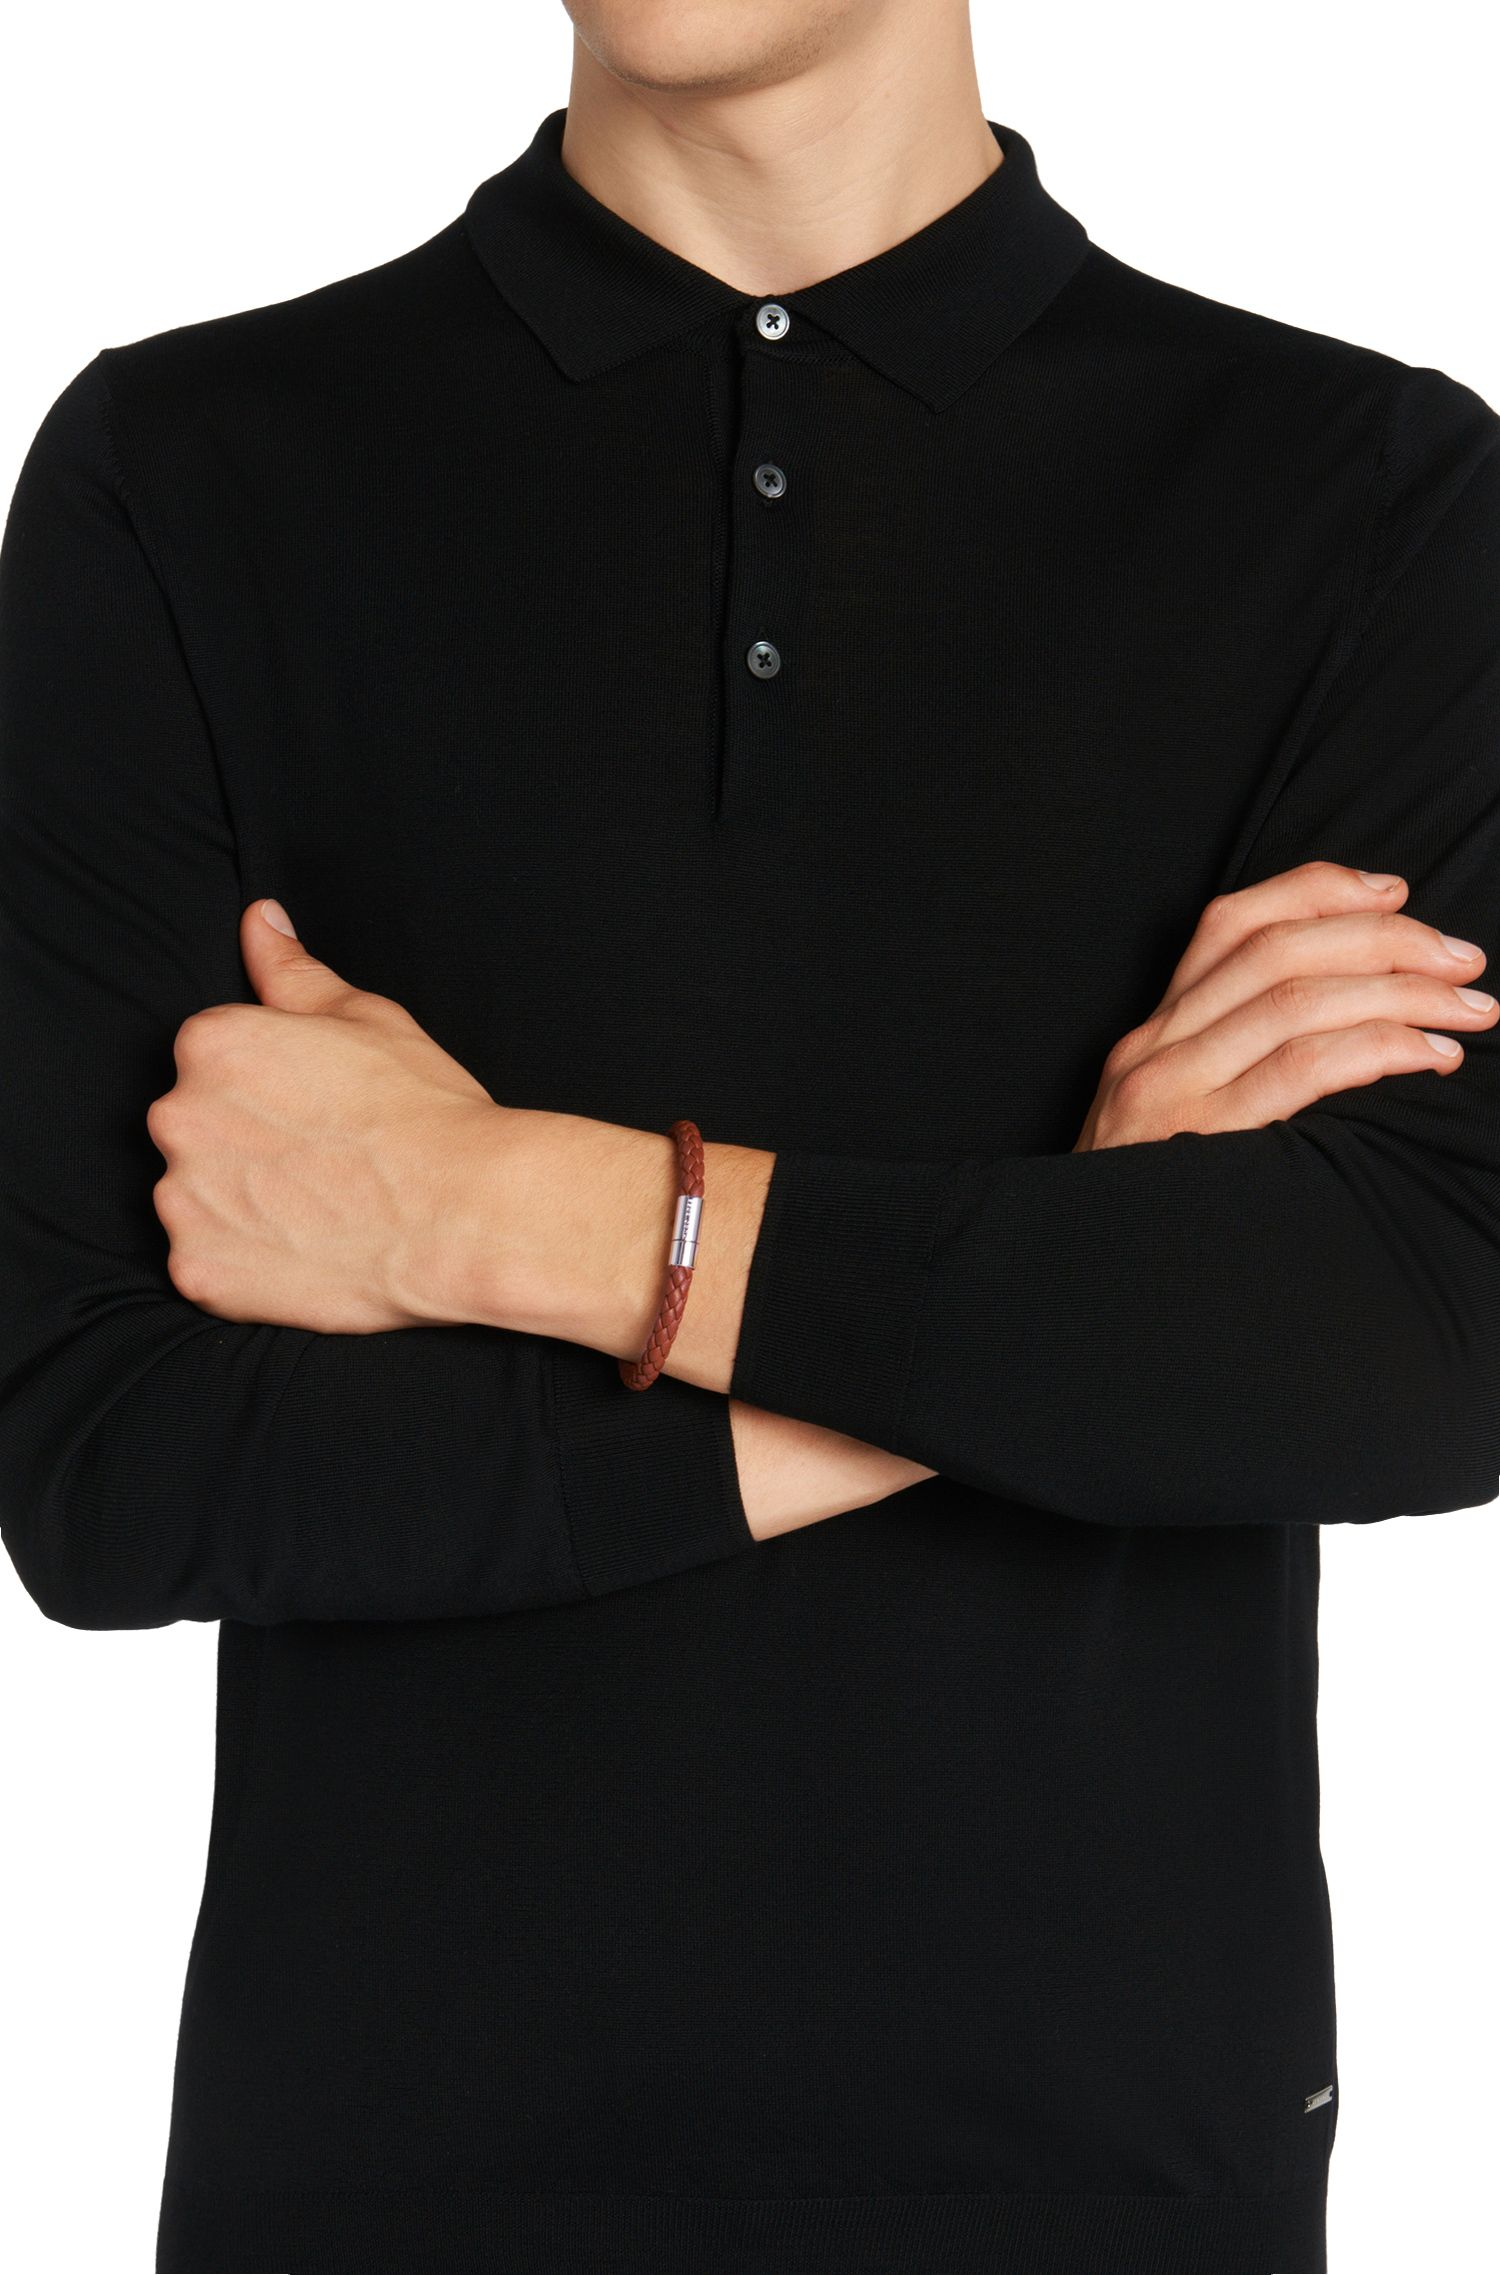 Armband van leer in vlechtlook: 'Balthazar'